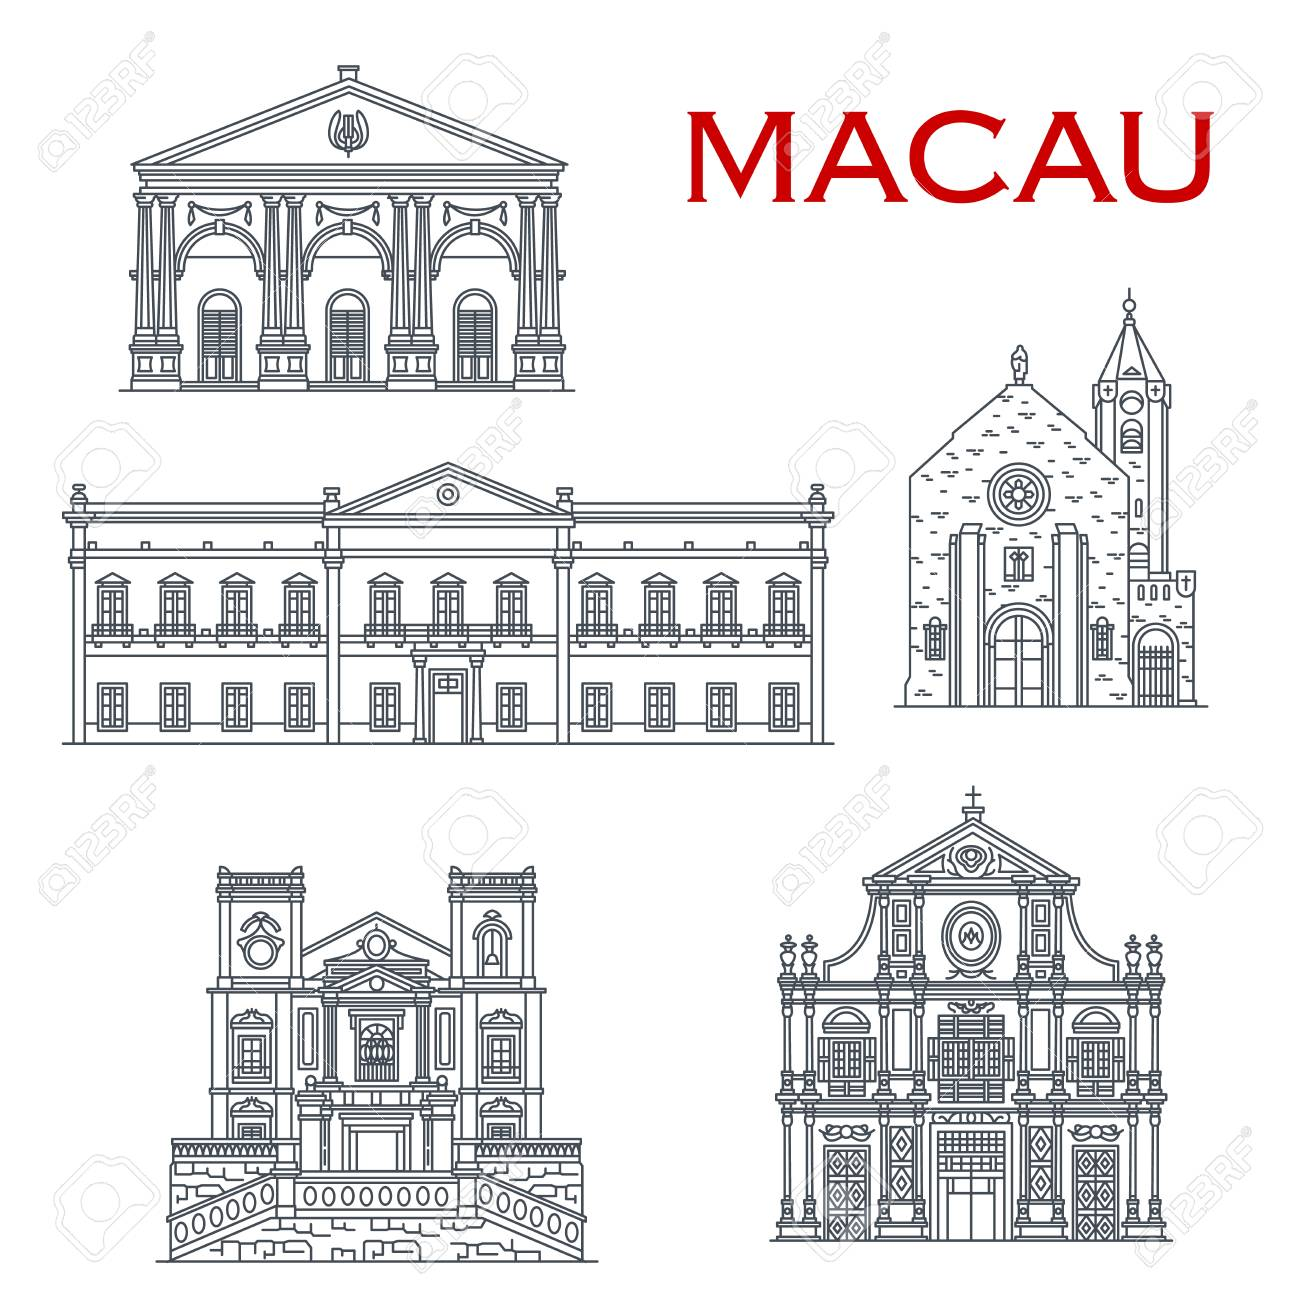 Chinese travel landmark vector icons with asian architecture of Macau. Penha Church, Dom Pedro Theatre and Leal Senado Building, St Lawrence and St Dominic Churches. Oriental tourism design - 120960528